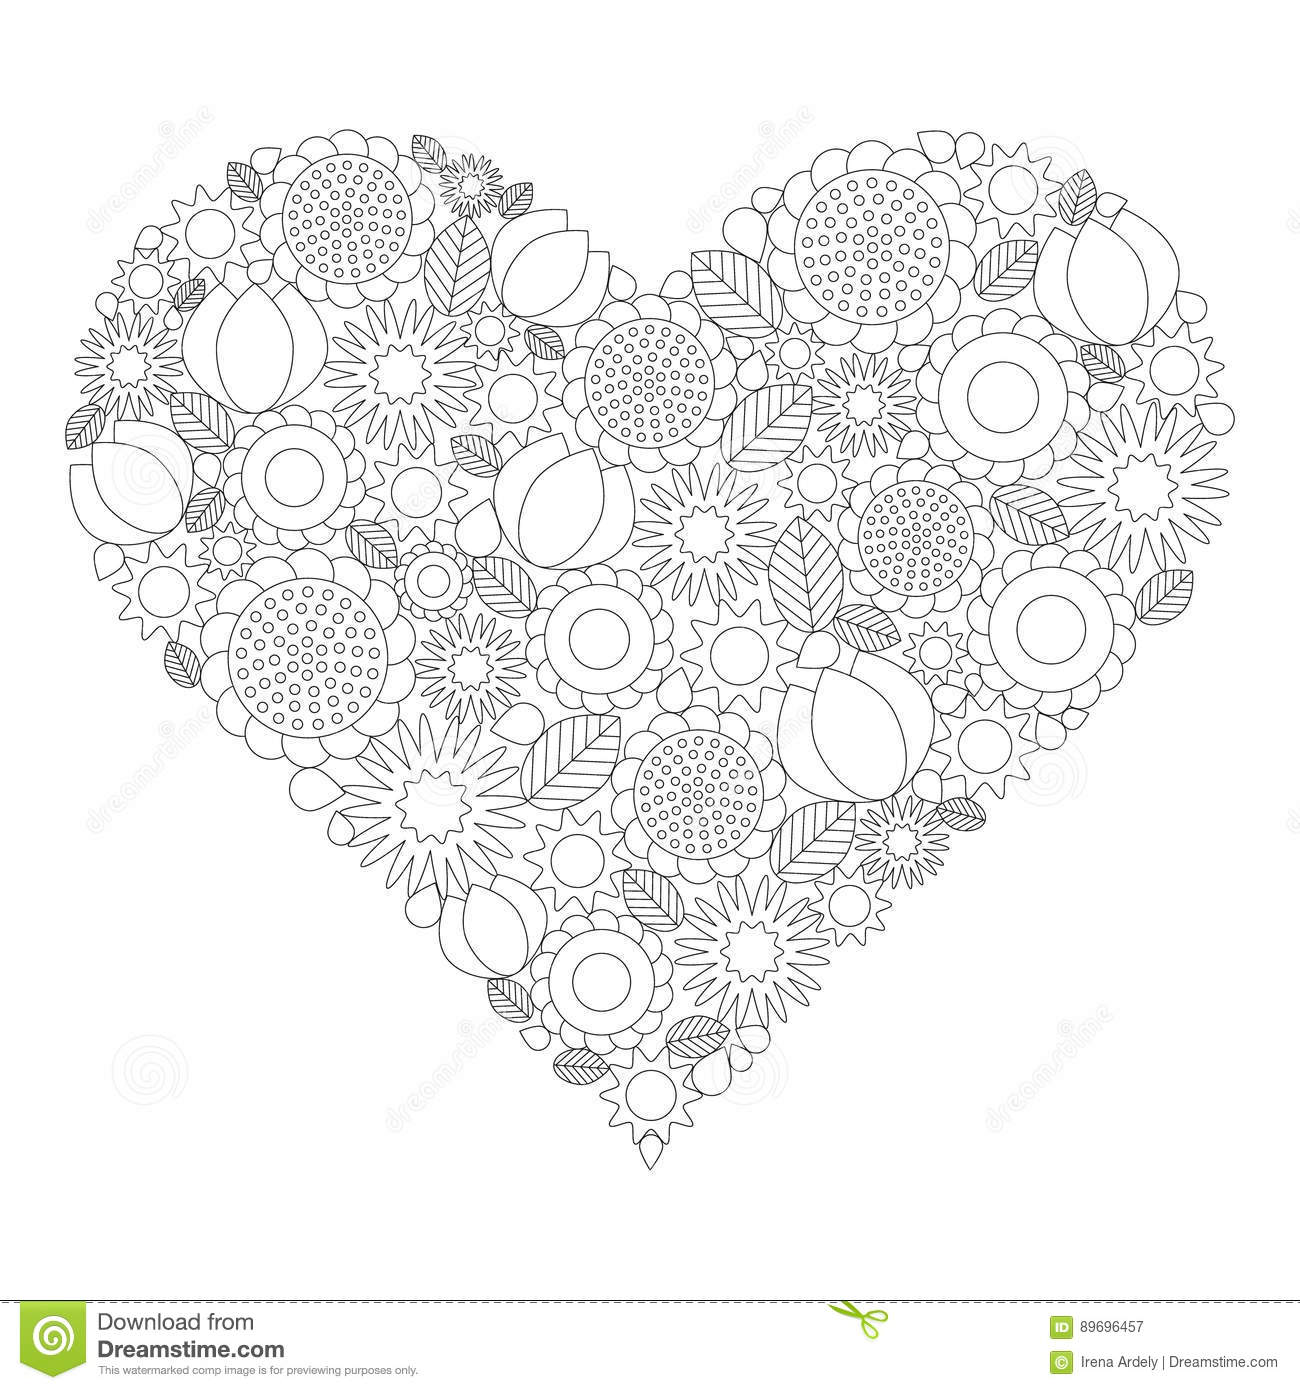 Adult coloring book page vector black and white contour picture adult coloring book page vector black and white contour picture heart shape with spring mightylinksfo